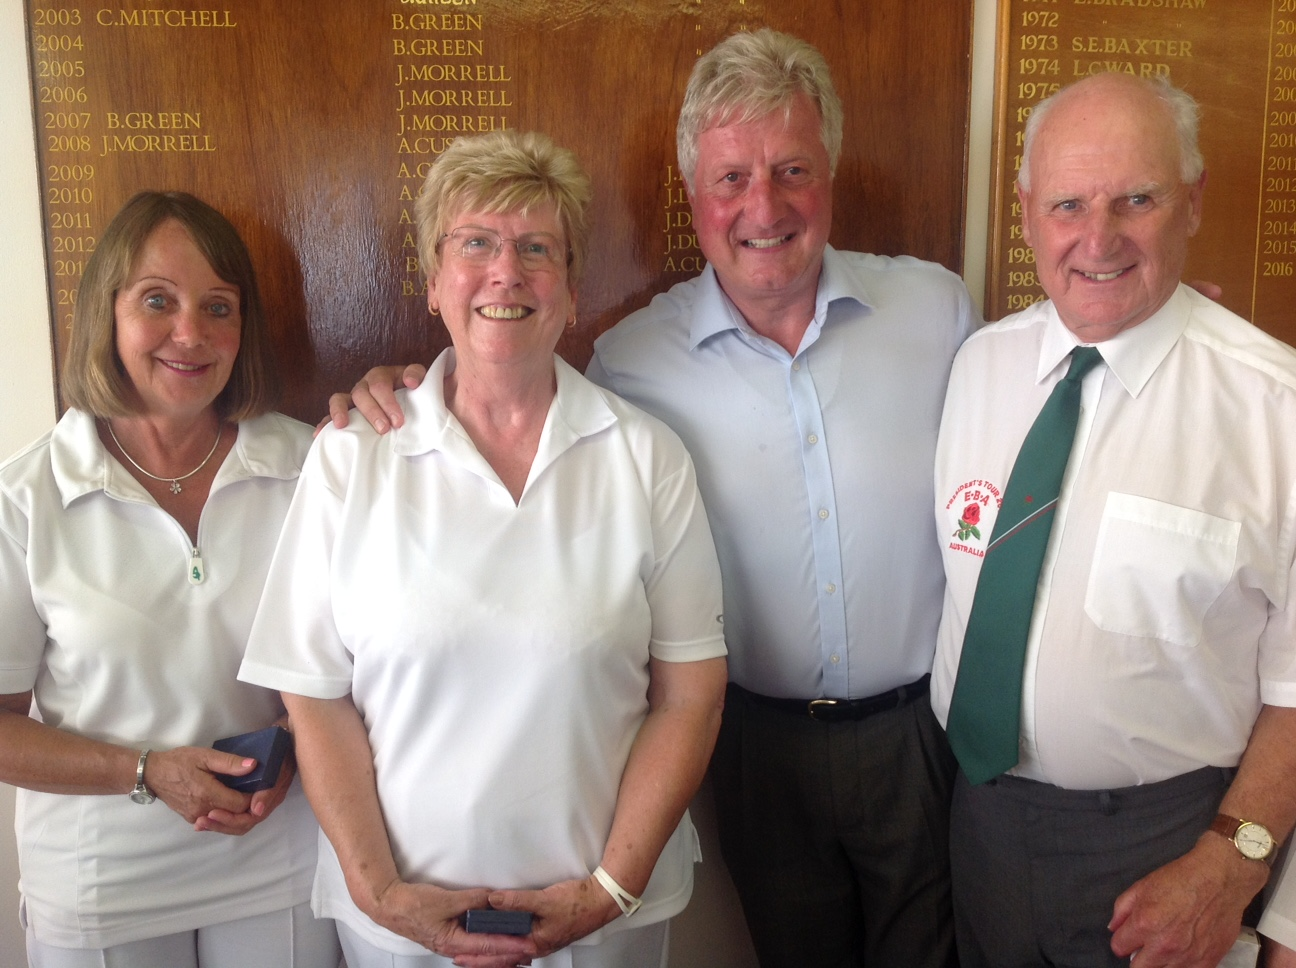 Tonys winning rink, left to right, Jacquie Yelland [Notts], Jenny McConnell [Leics - Melton Mowbray], Mike Poole [Herts] with Captain Tony